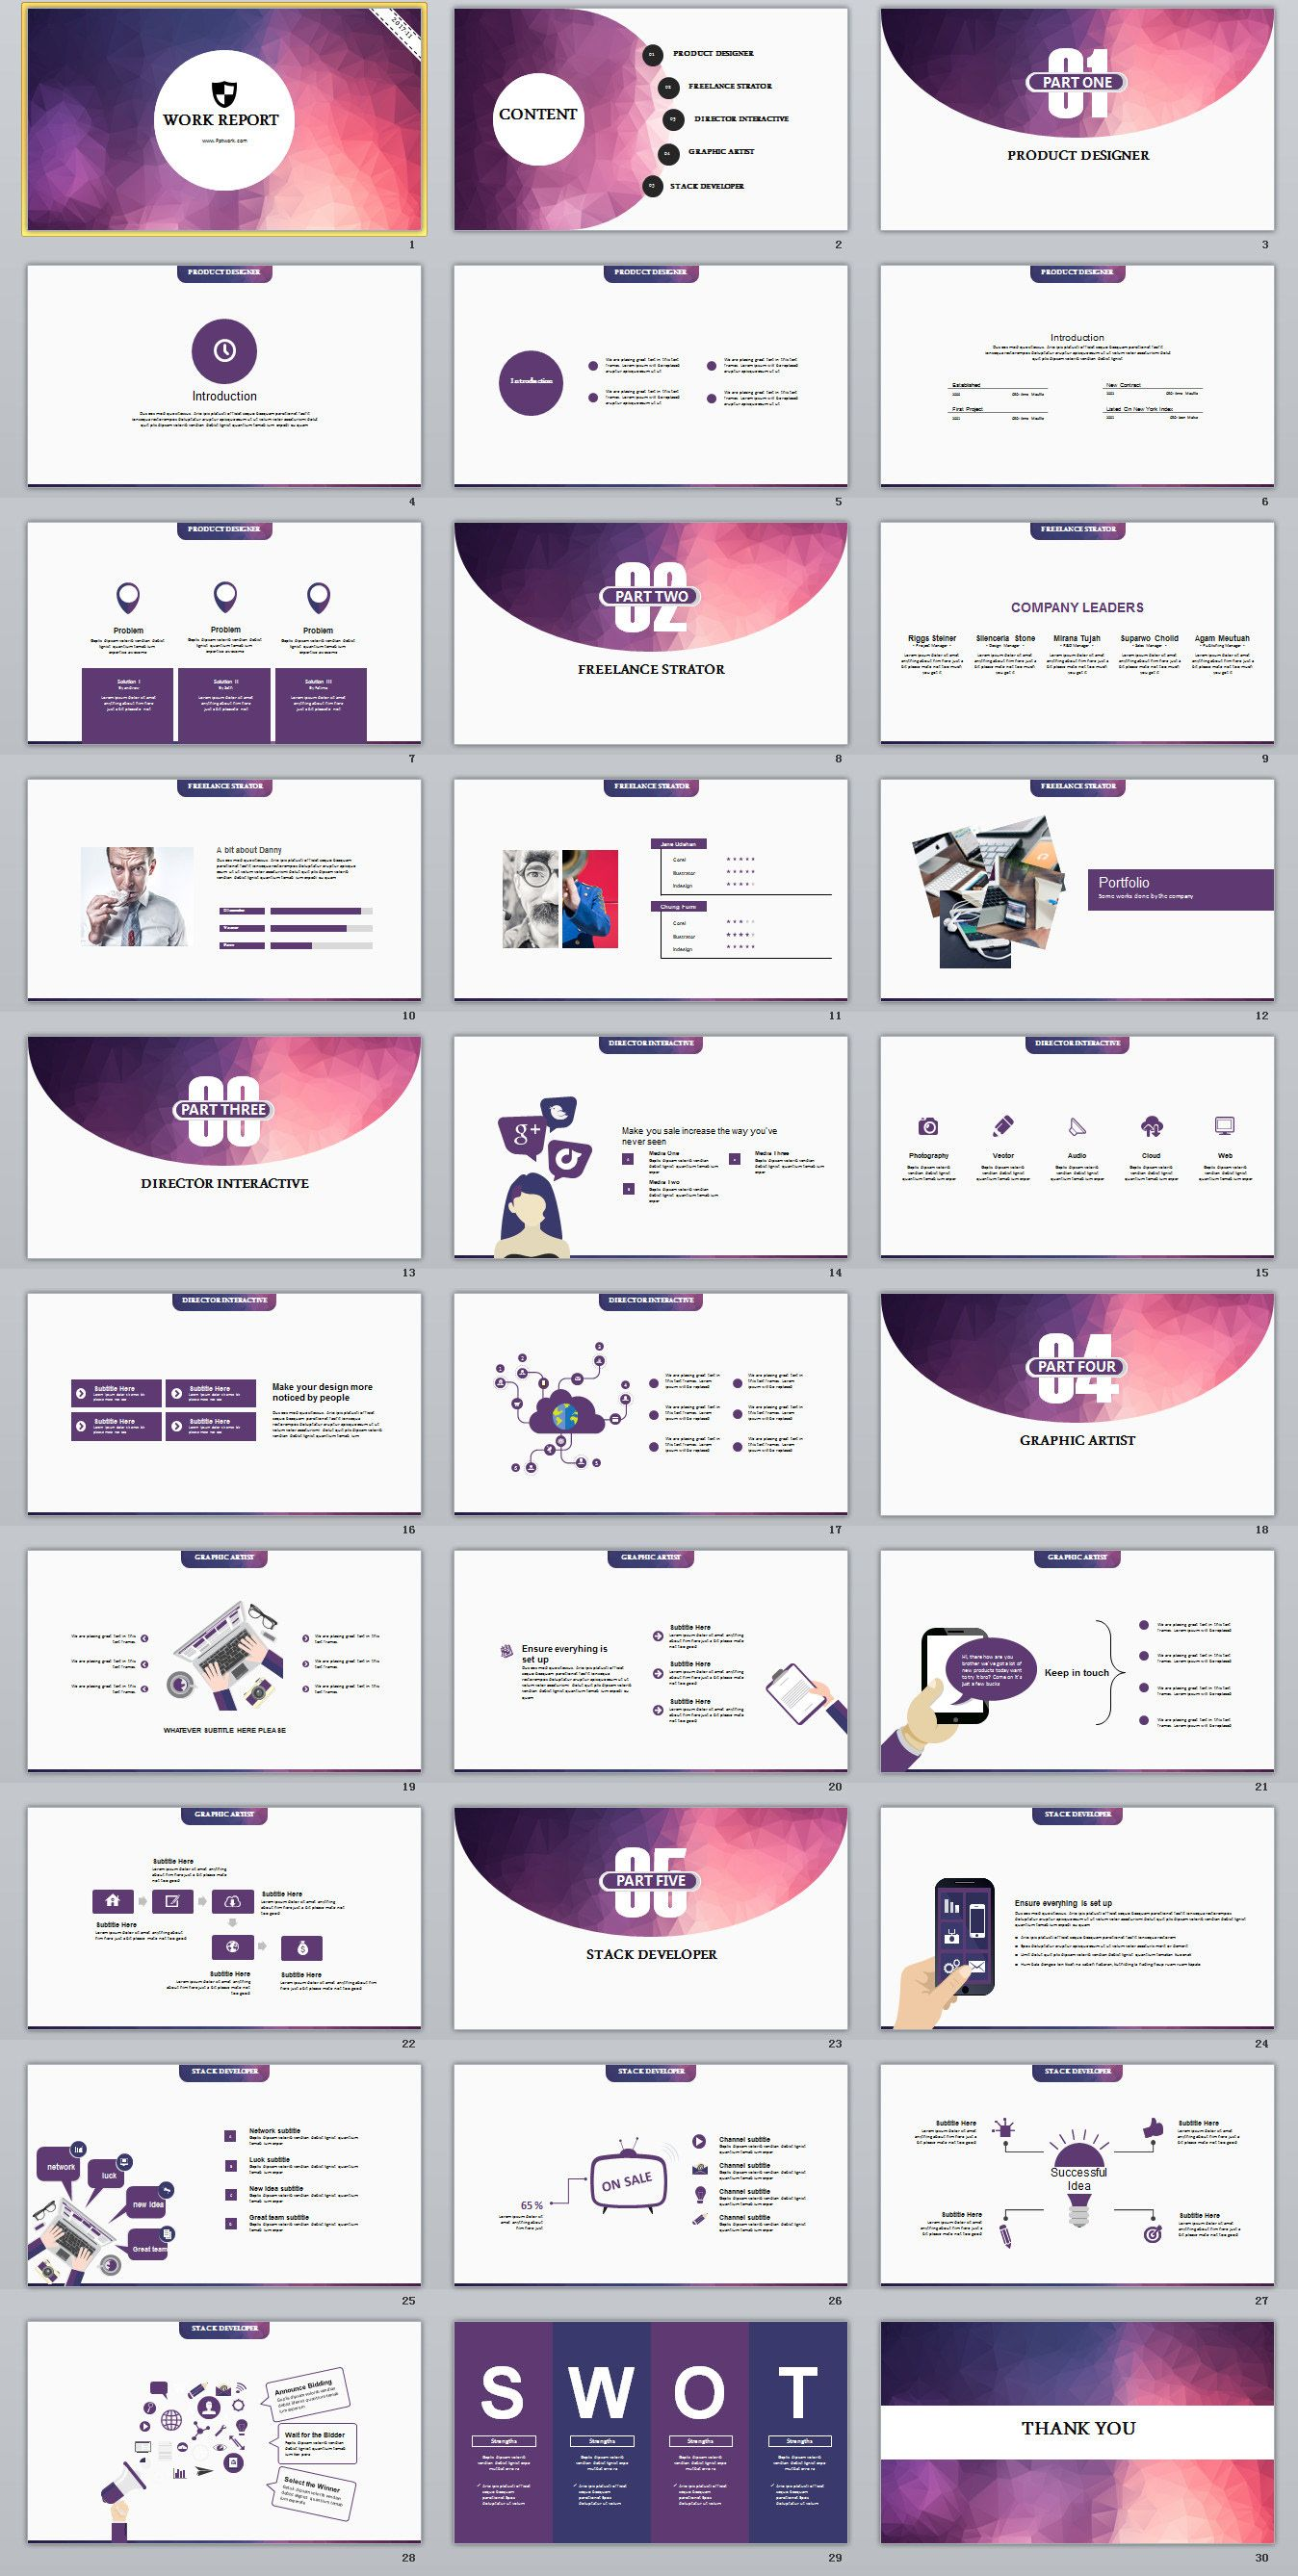 30 purple slide report powerpoint templates on behance powerpoint 30 purple slide report powerpoint templates on behance powerpoint templates presentation toneelgroepblik Choice Image